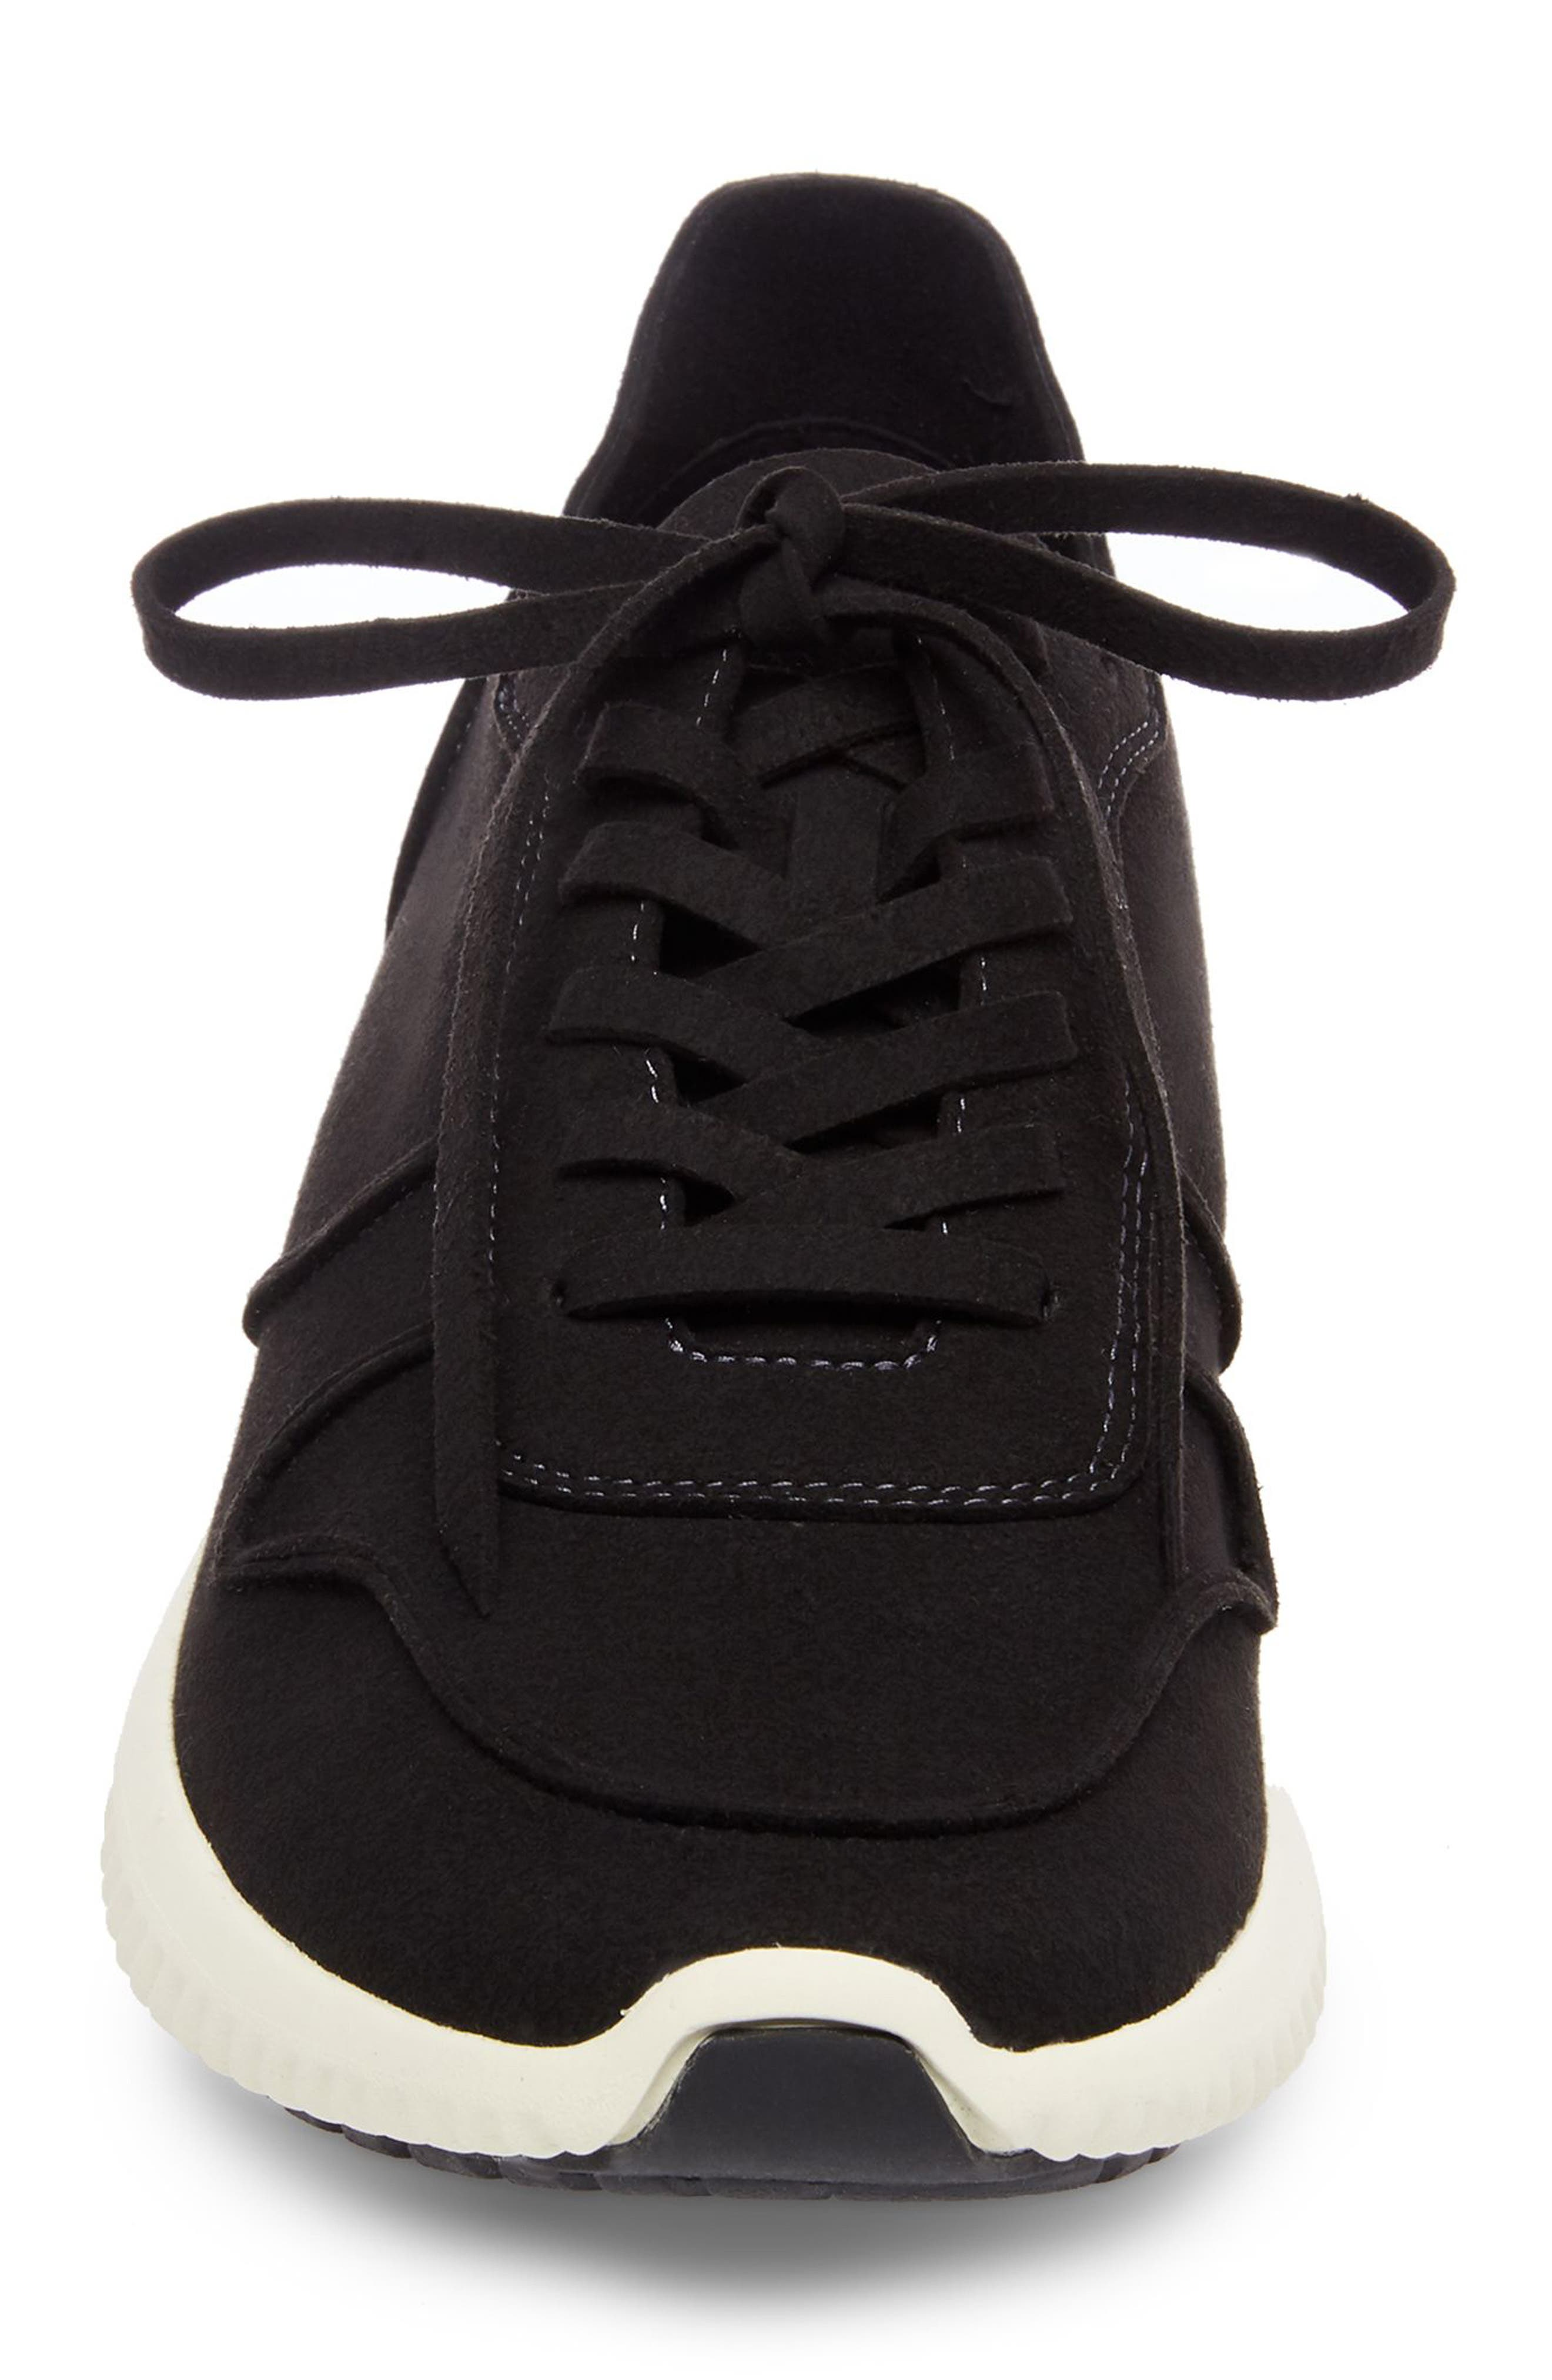 Rolf Low Top Sneaker,                             Alternate thumbnail 4, color,                             BLACK LEATHER